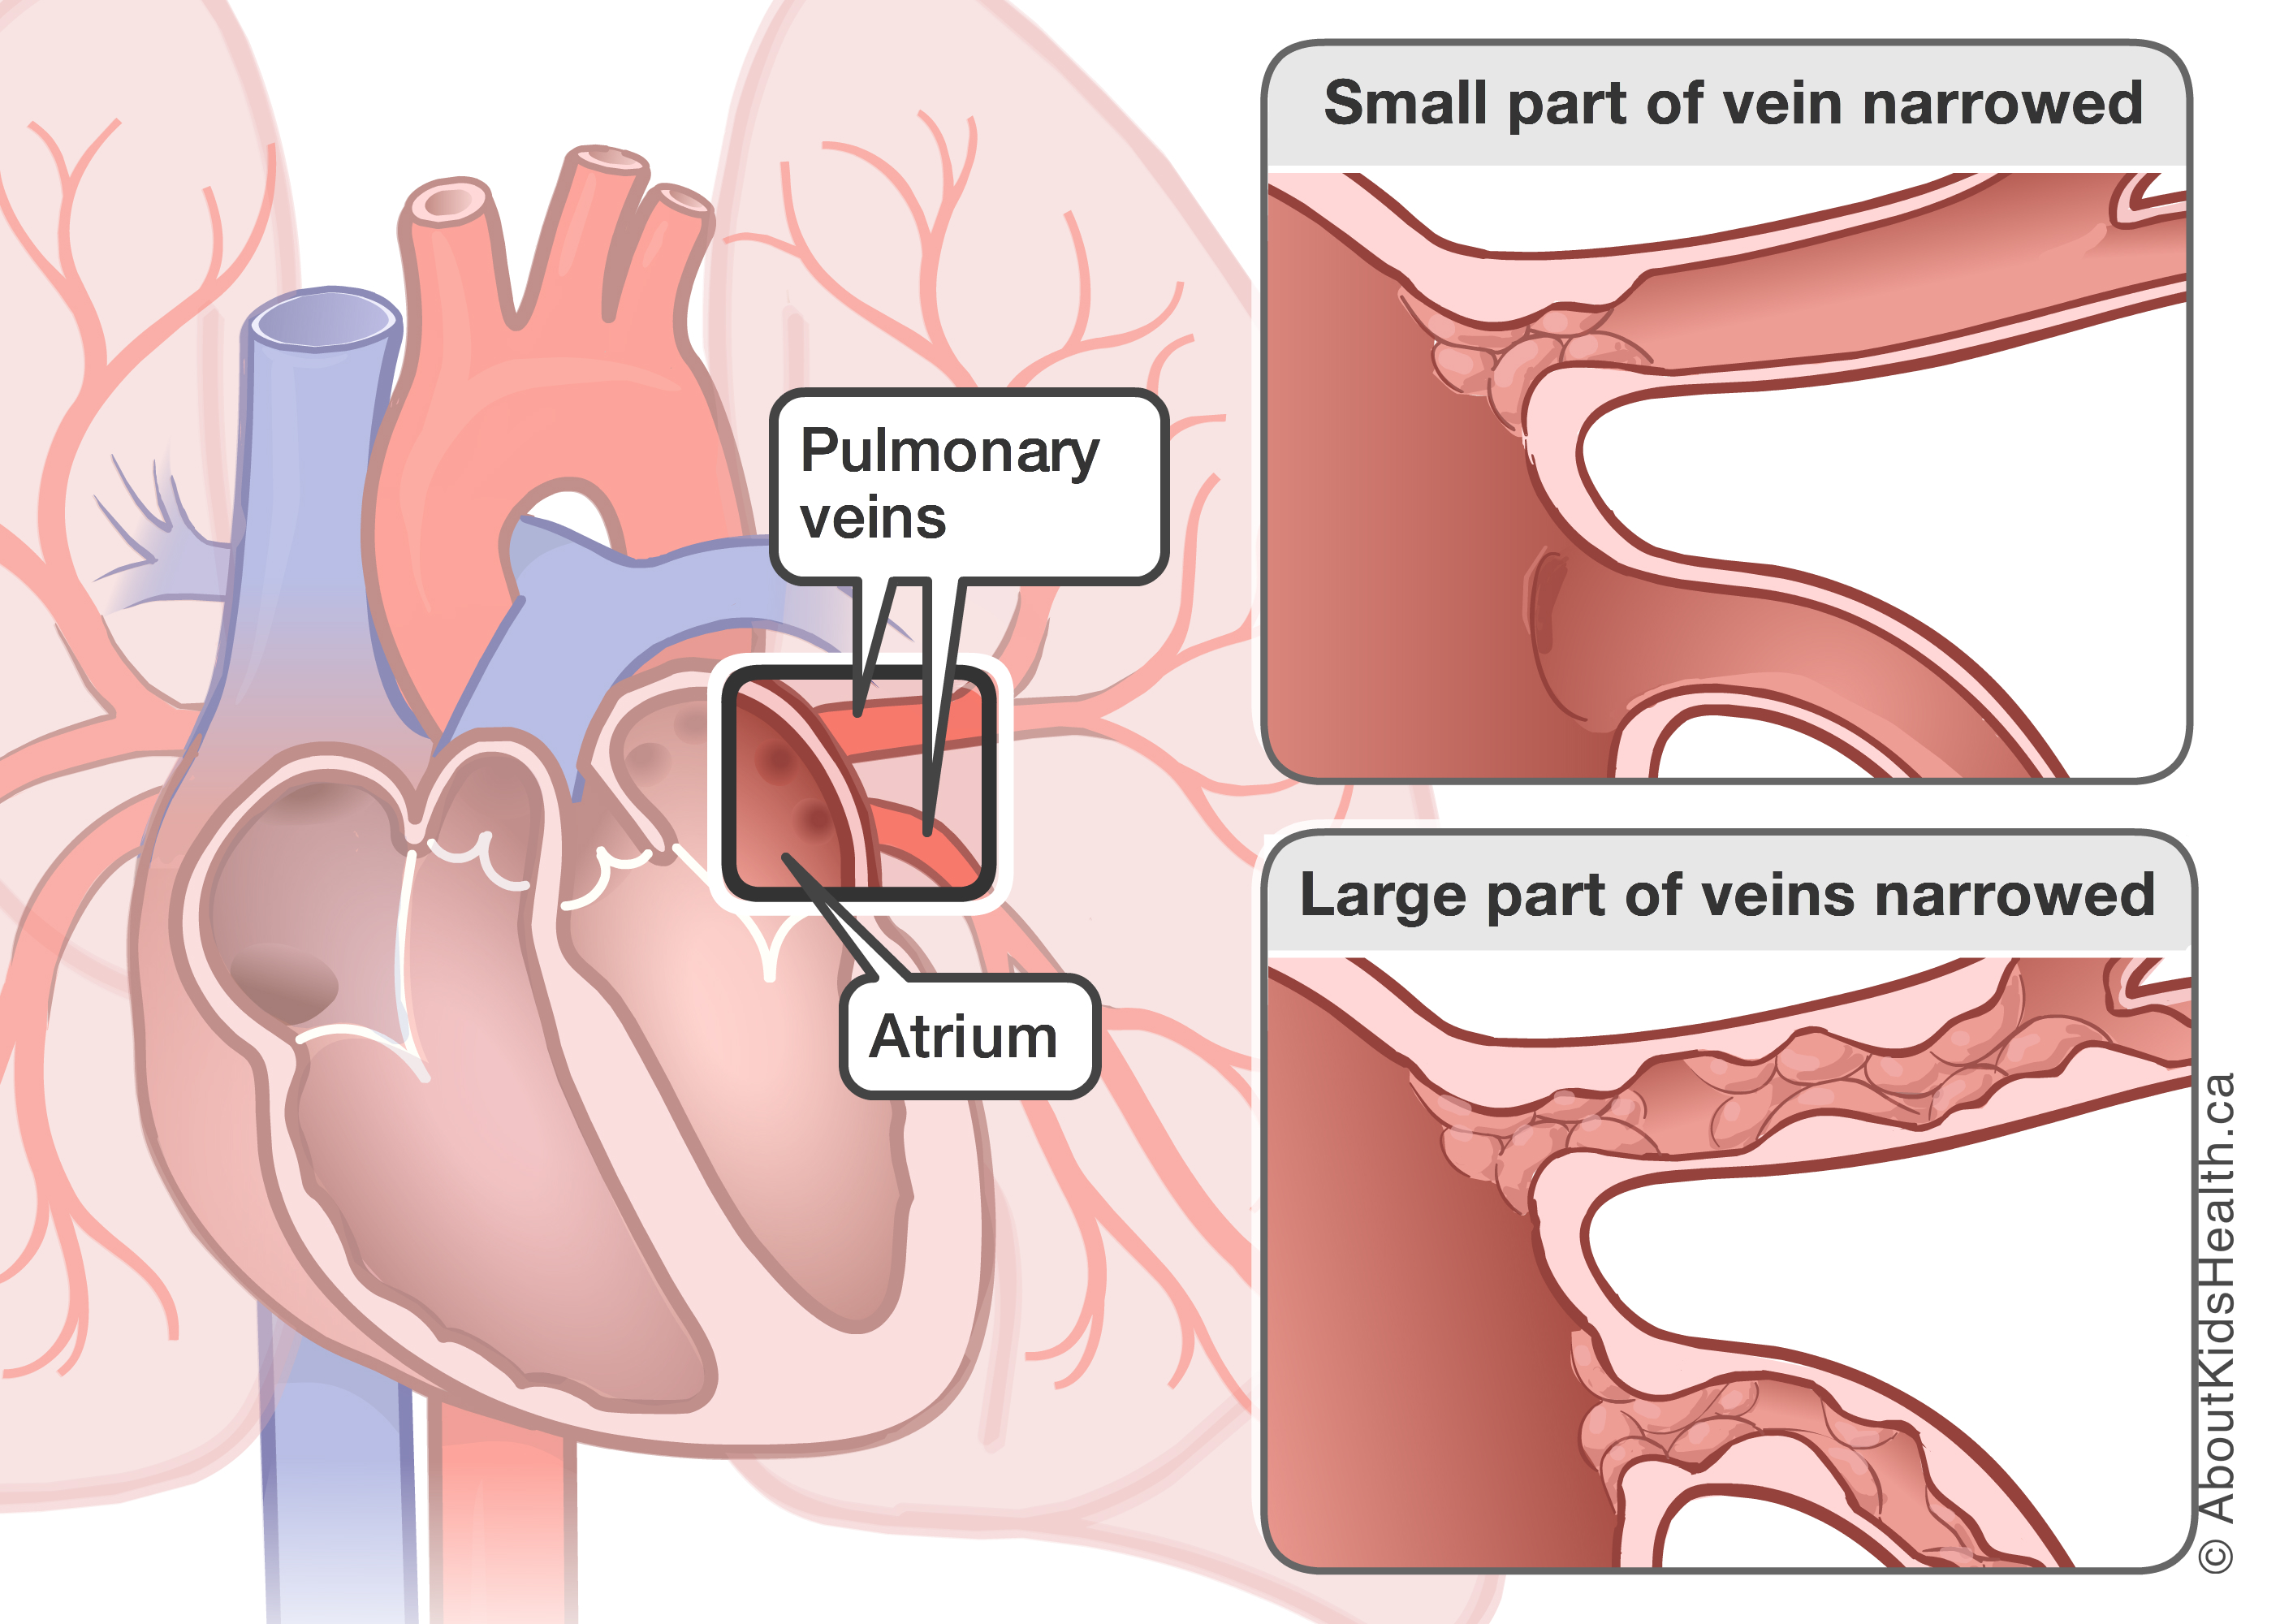 pulmonary vein stenosis Hand Veins in Wrist and All Names illustration of small part of vein narrowed and large part of veins narrowed